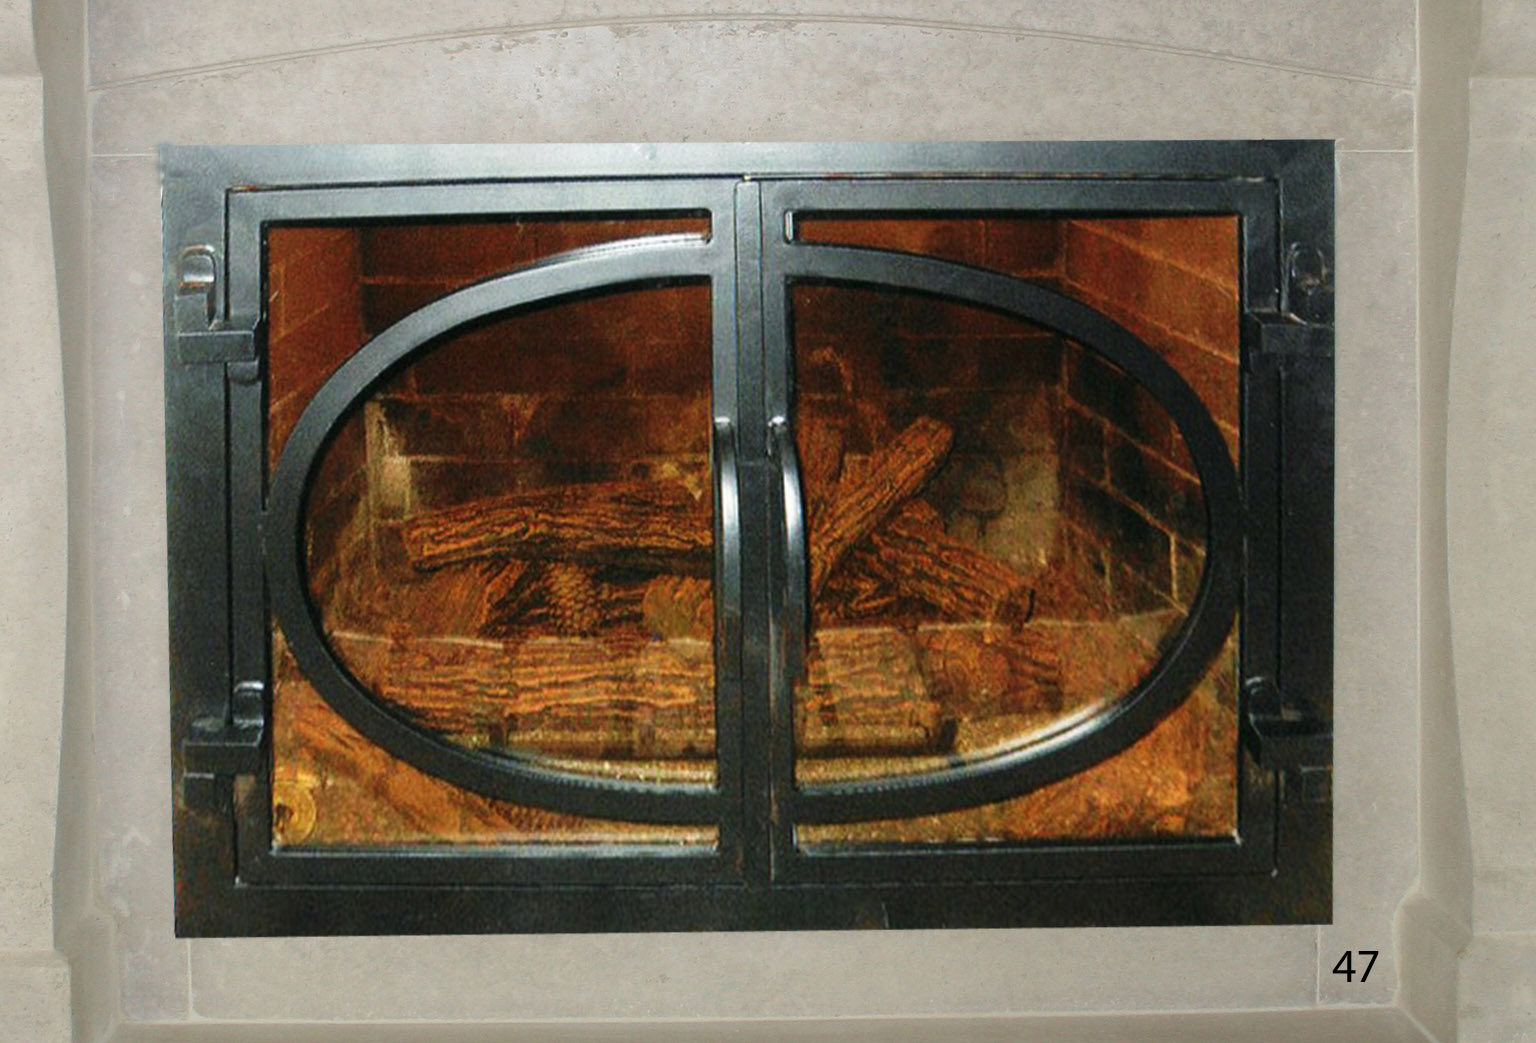 Hand Forged Iron Fireplace Doors Fd047 From Mantel Depot In San Diego